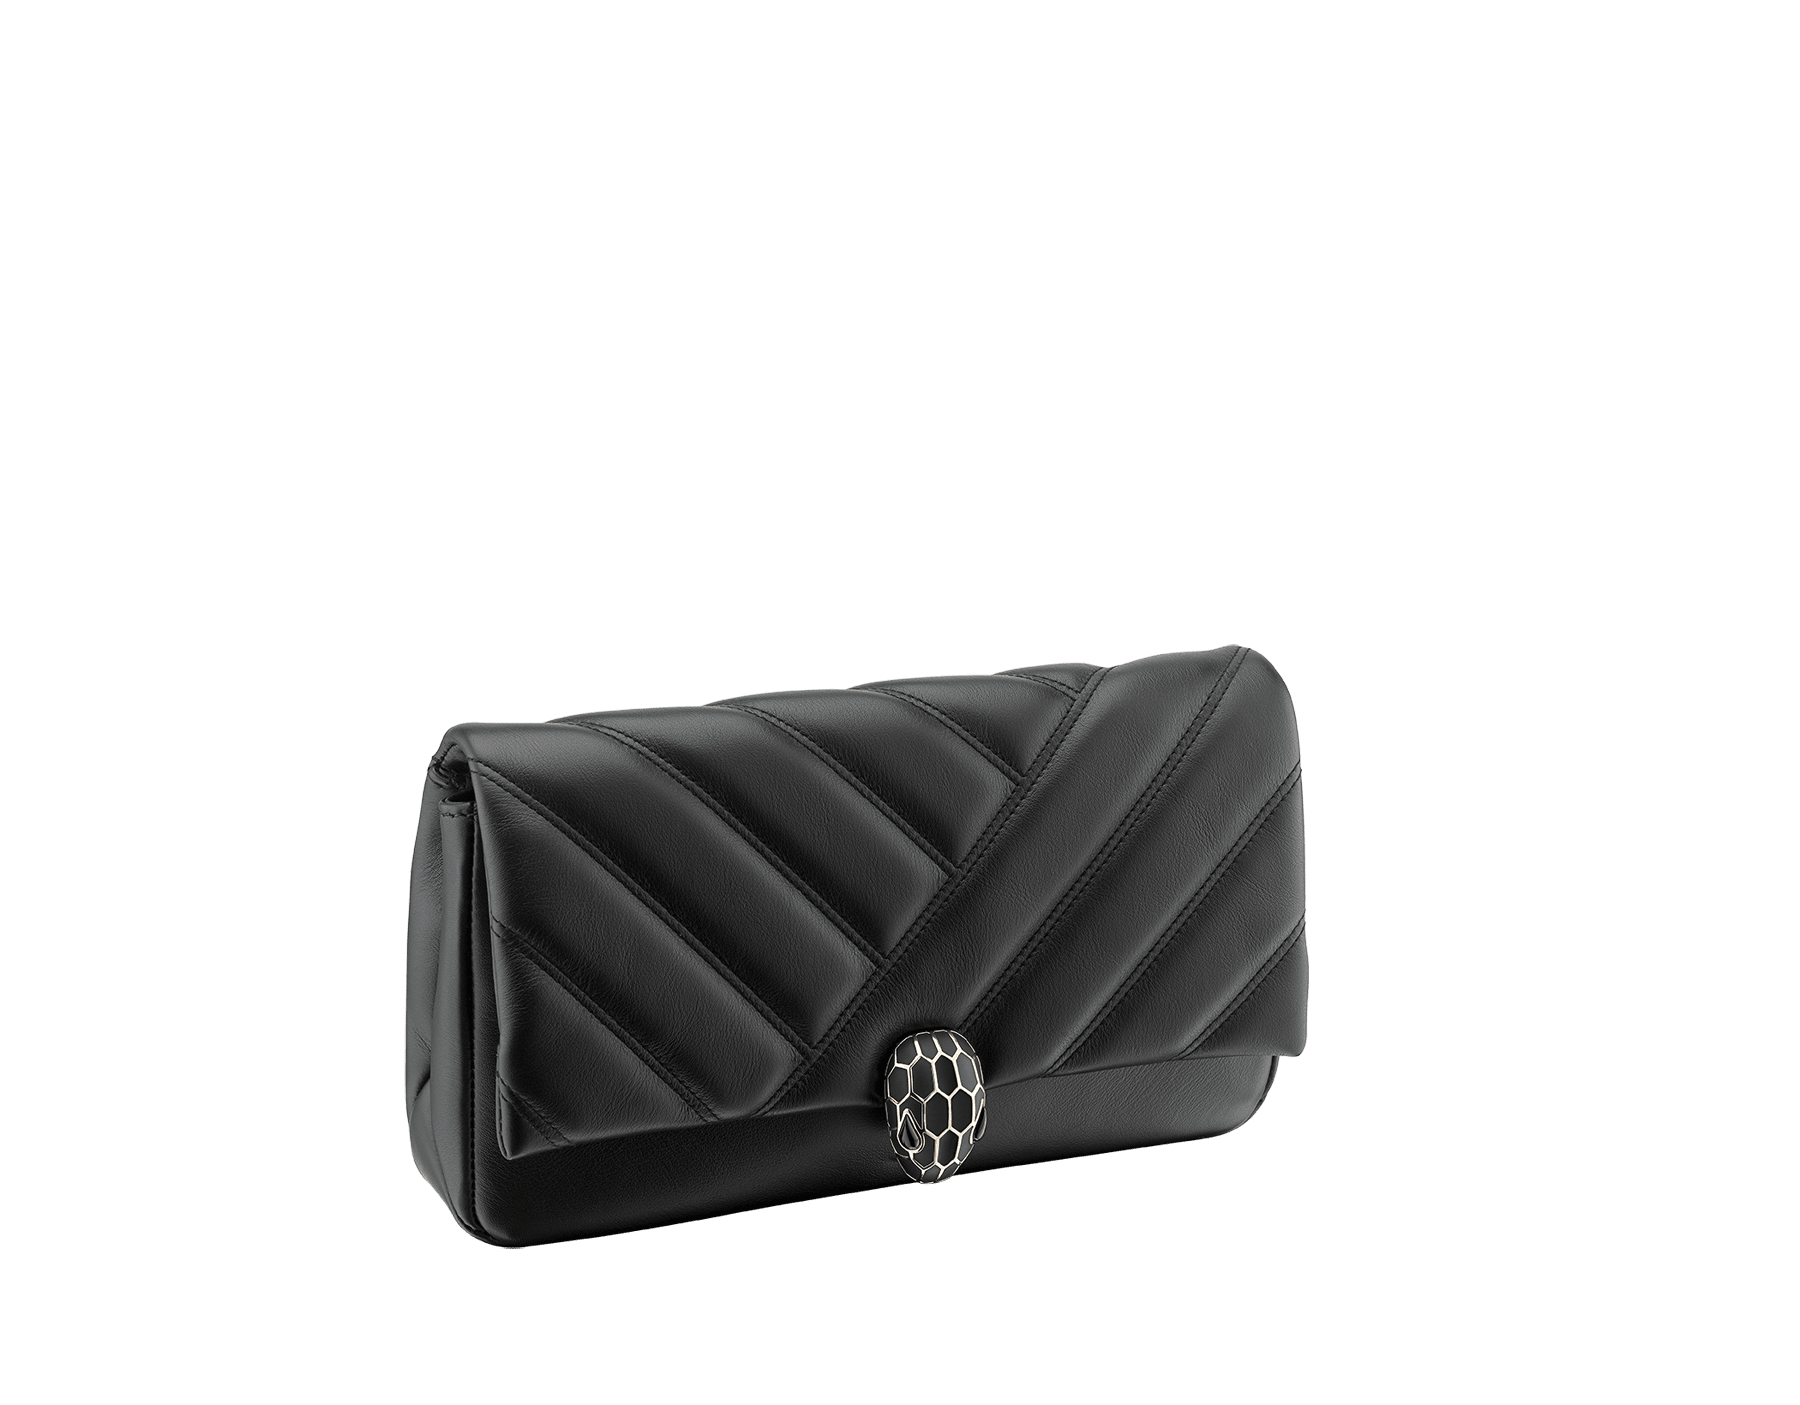 Serpenti Cabochon clutch bag in soft matelassé black calf leather, with a graphic motif. Tempting pink gold-plated brass snake head closure in matt and shiny black enamel and black onyx eyes. 289301 image 2